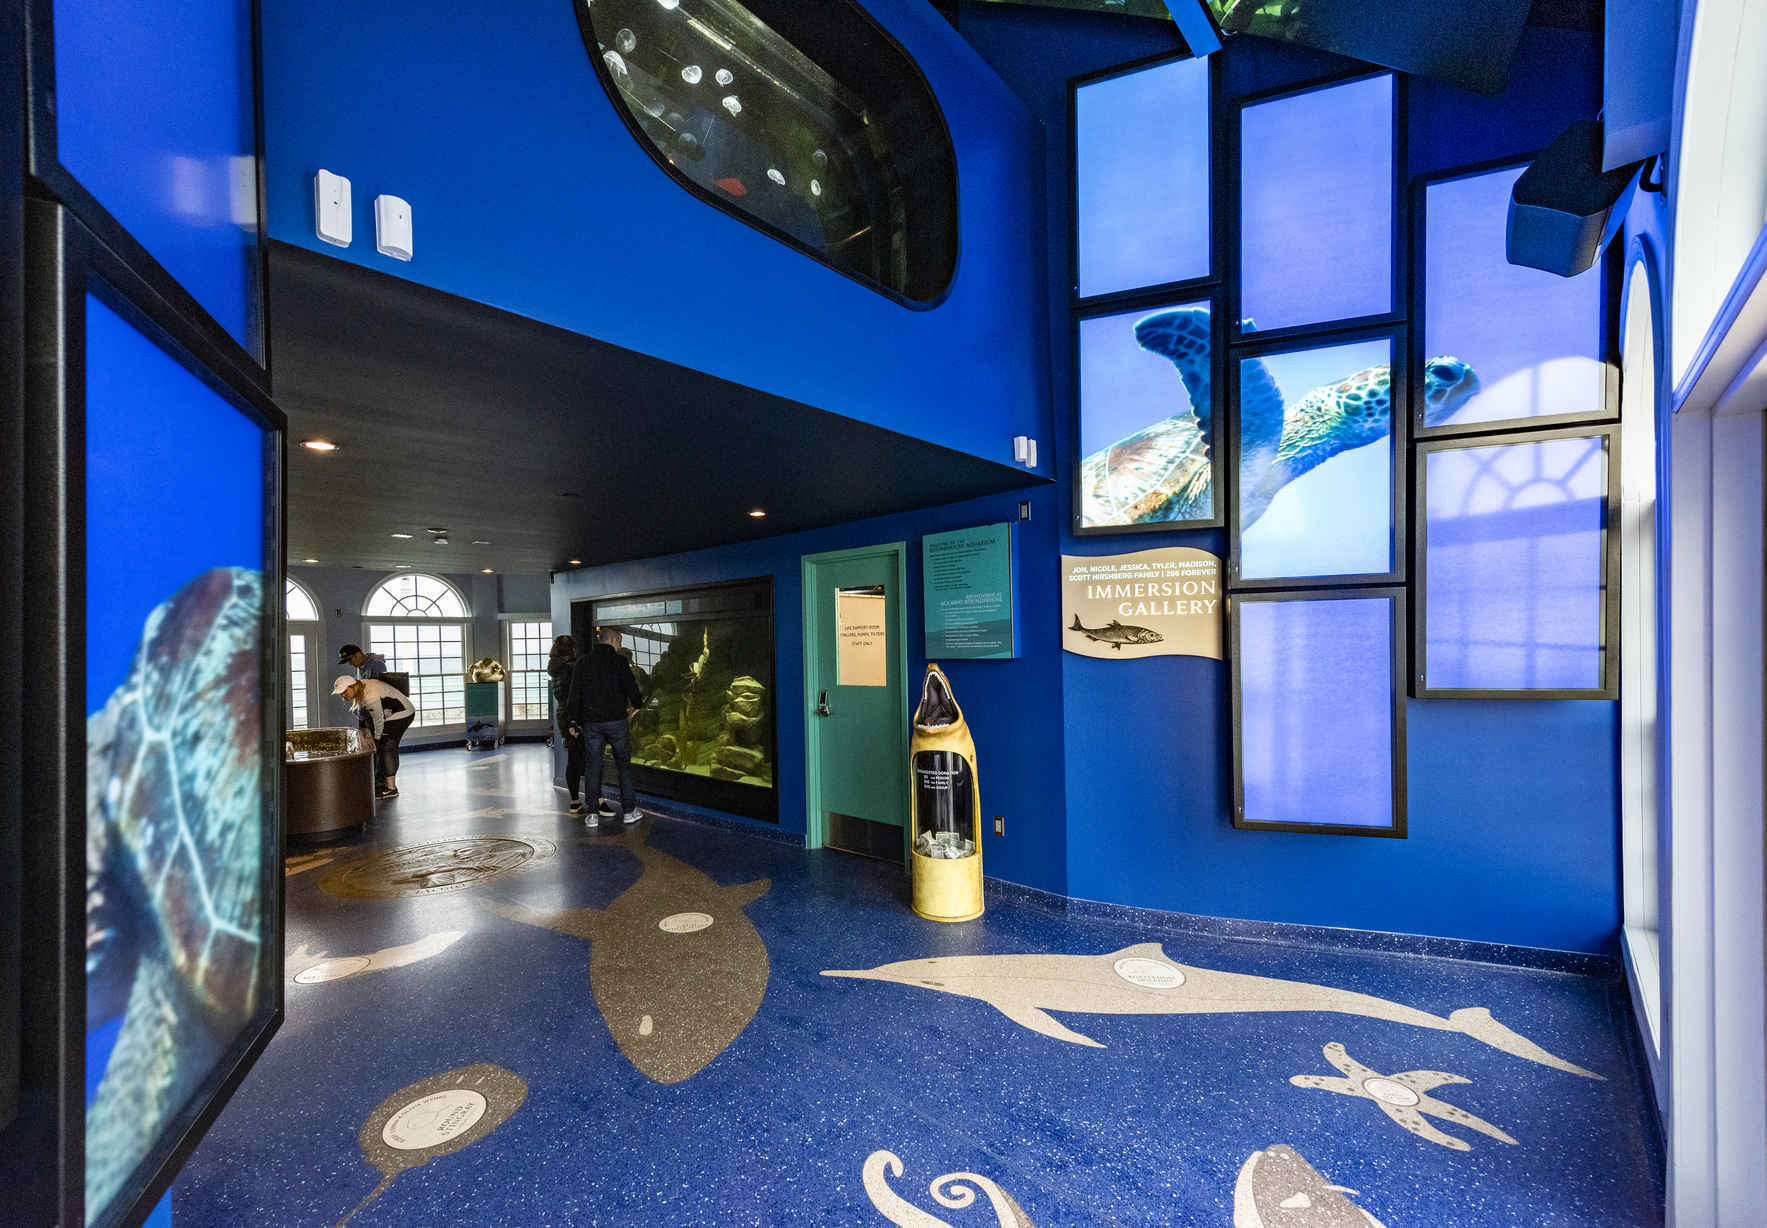 July 2 - Reserve your free entry to the Roundhouse Aquarium image